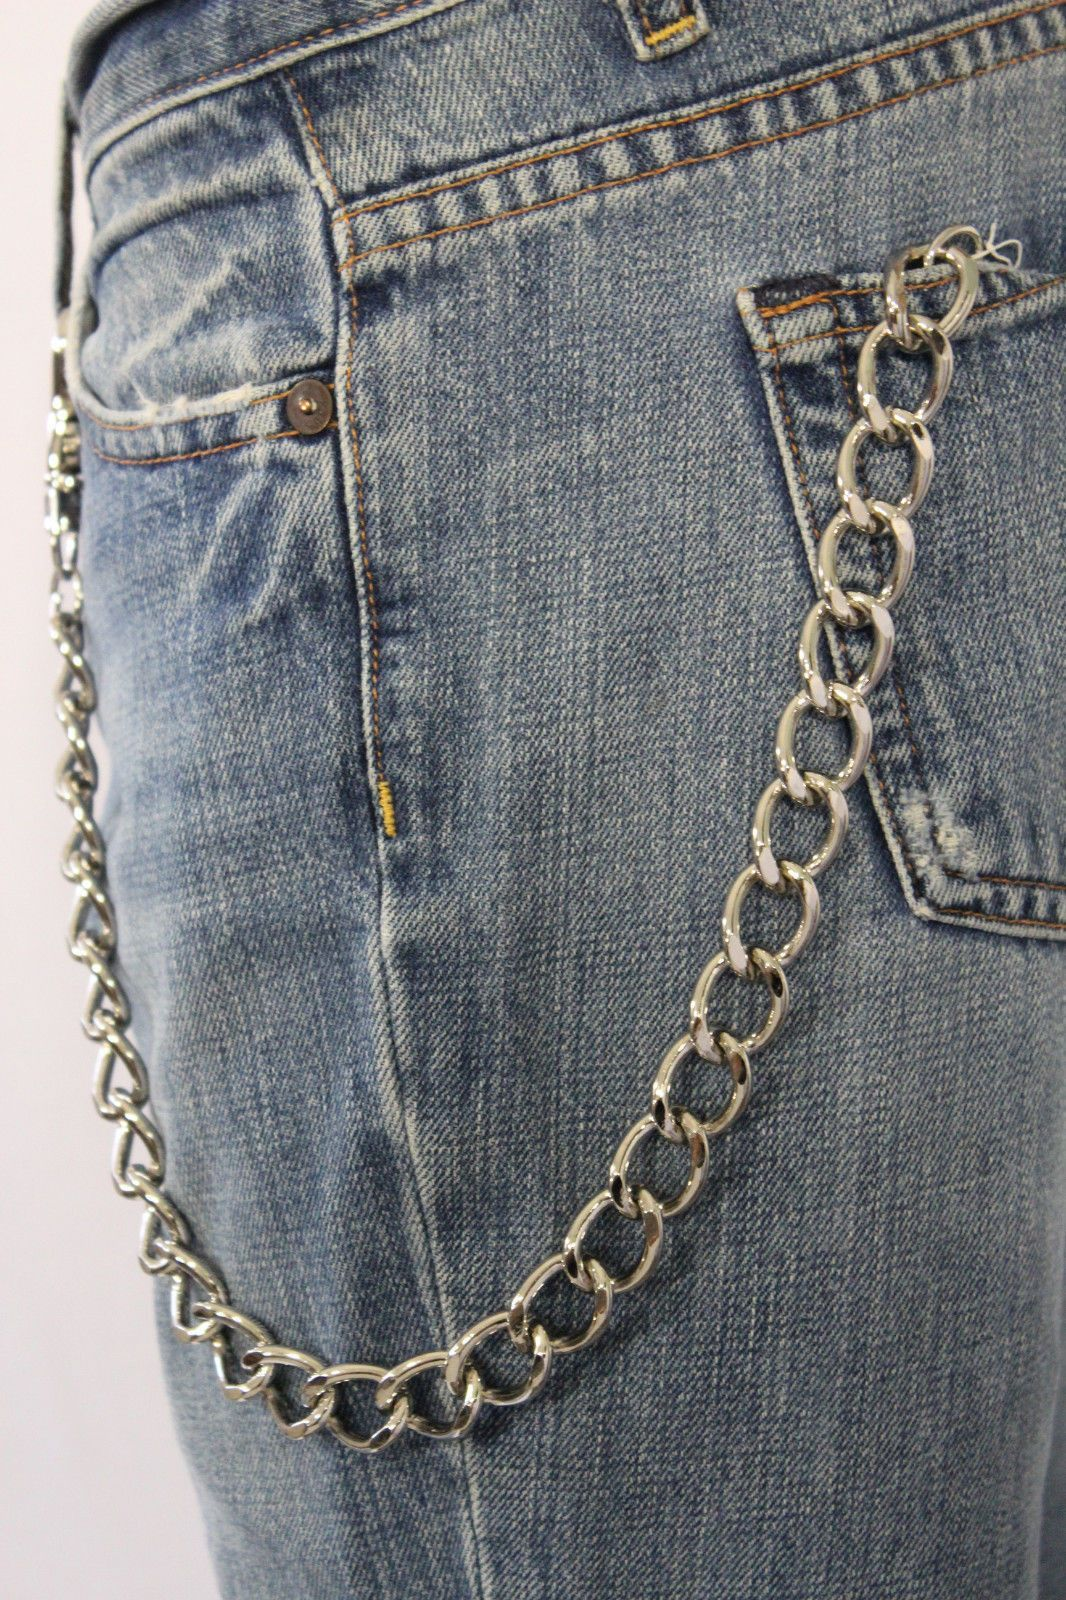 Men Silver Classic Chunky Metal Thick Wallet Chain KeyChain Biker Jeans Truck